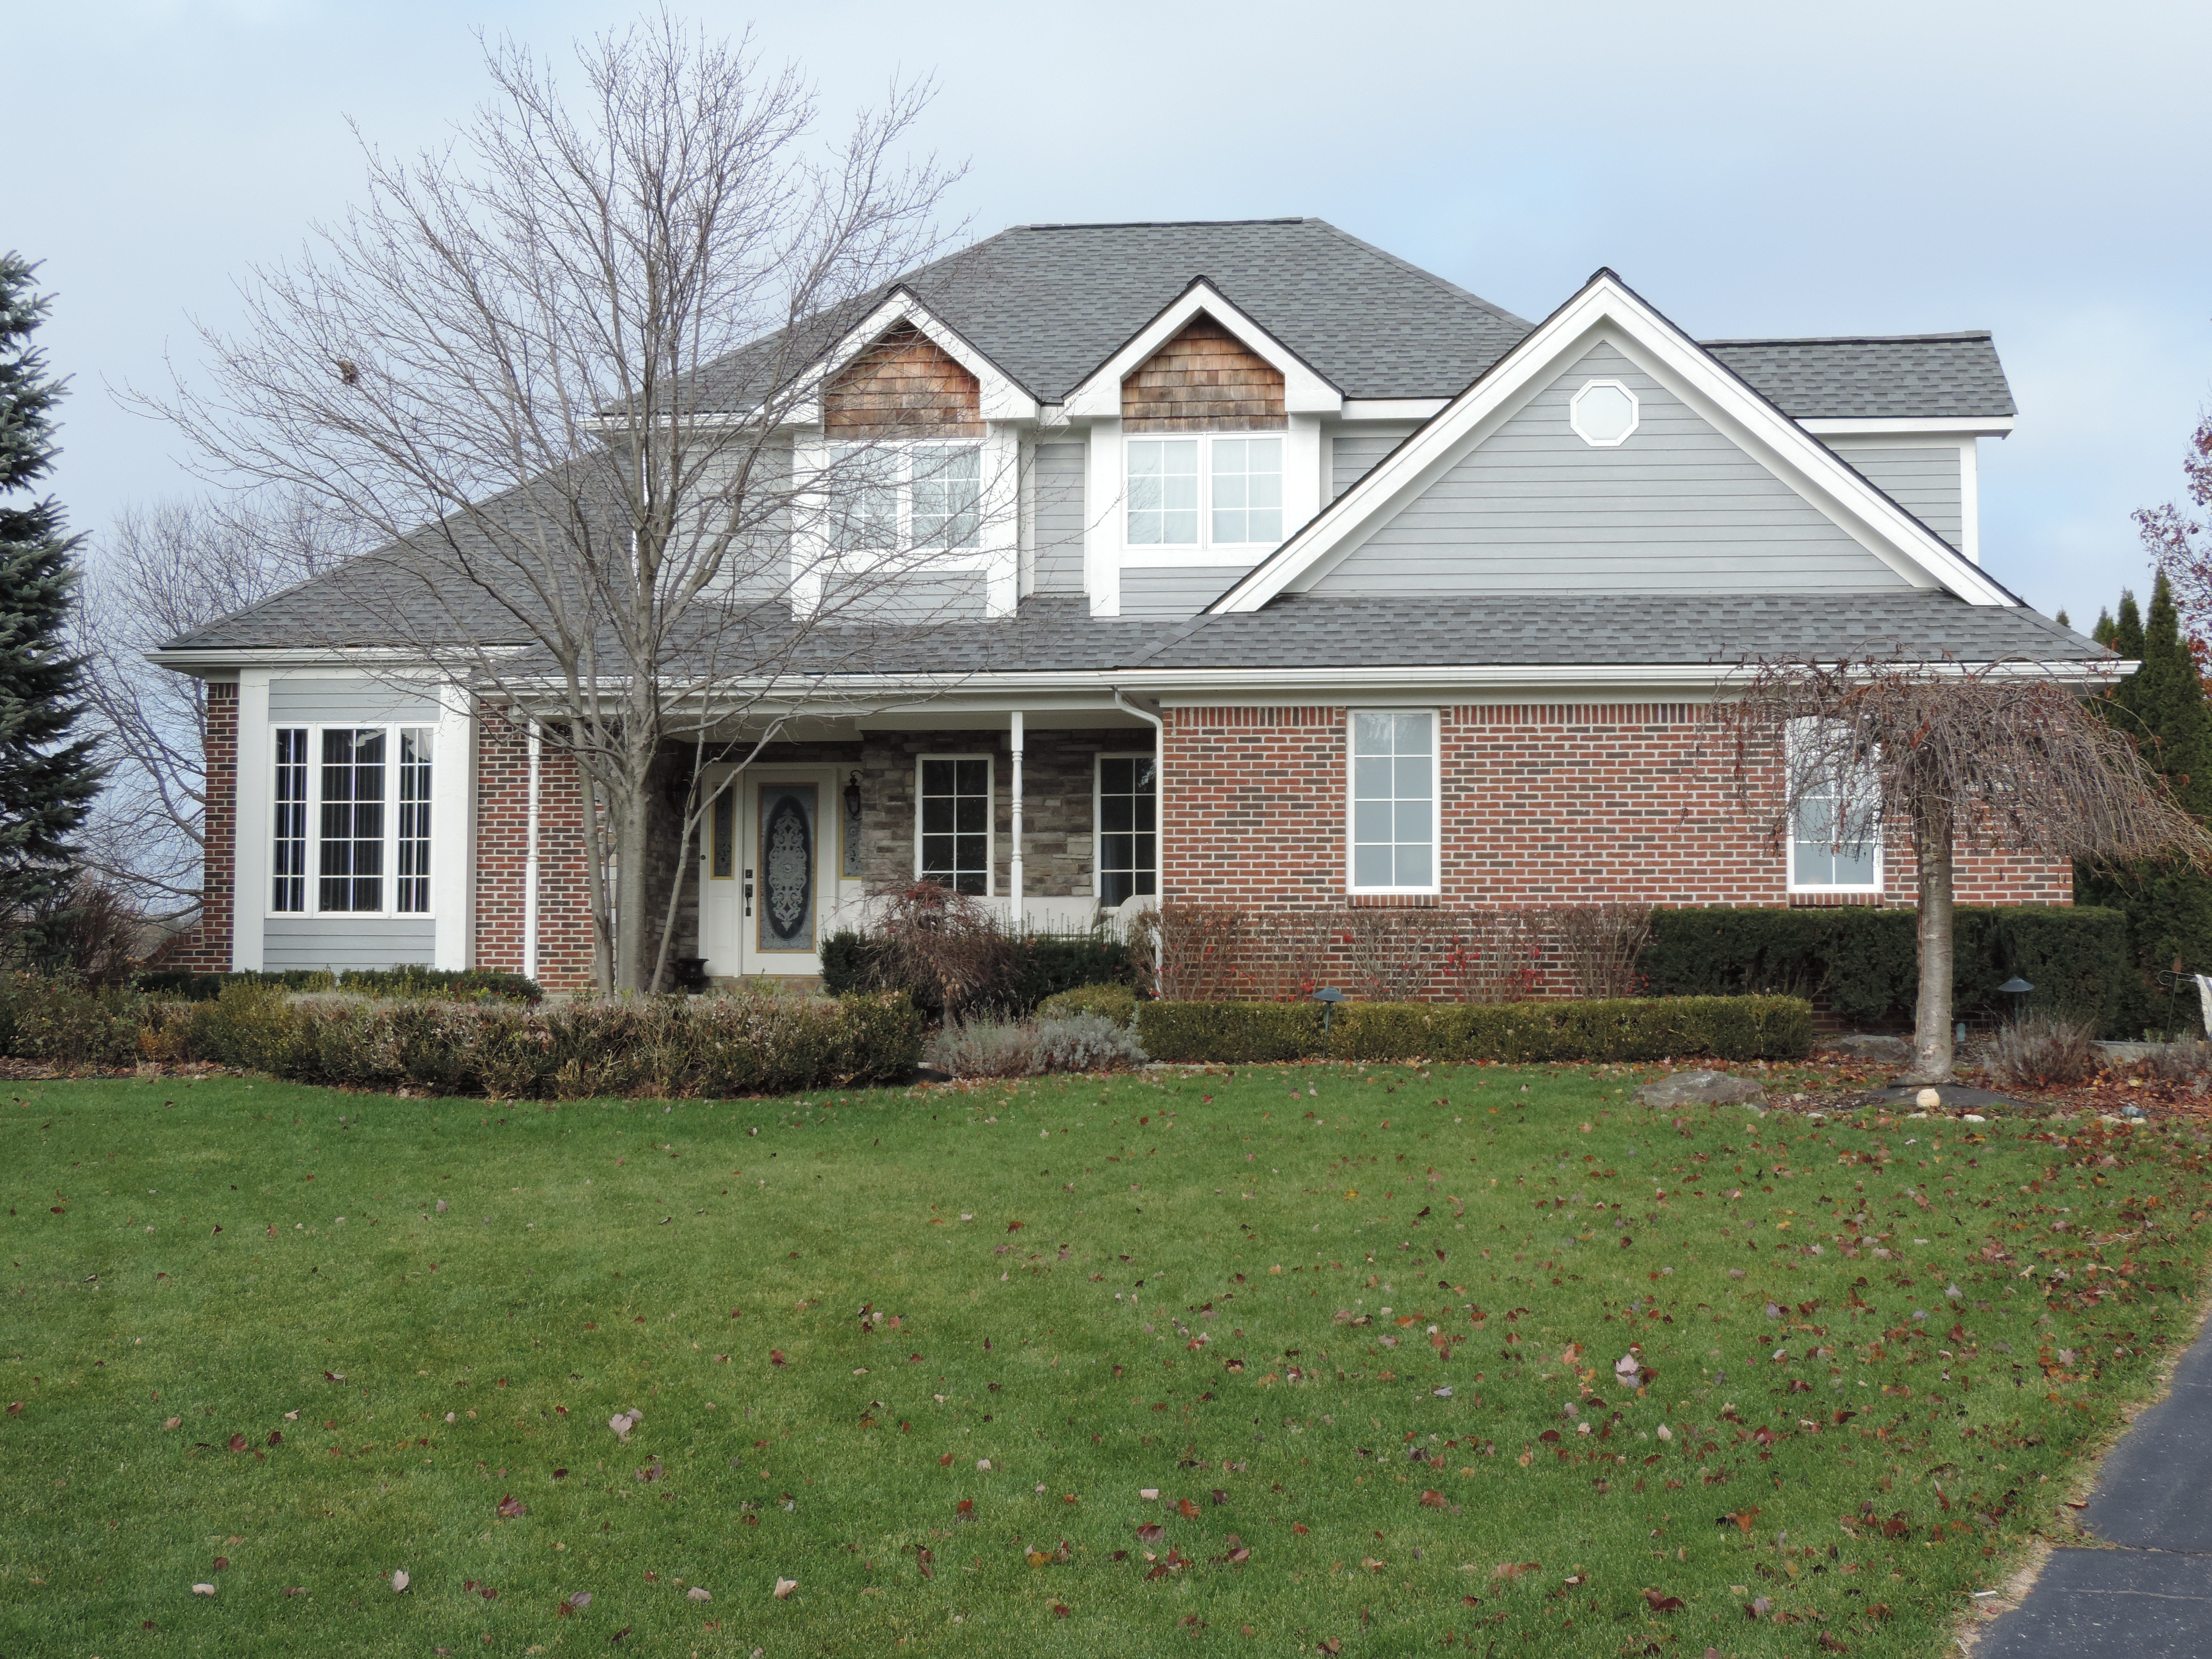 home for sale on anchor lane in highland michigan